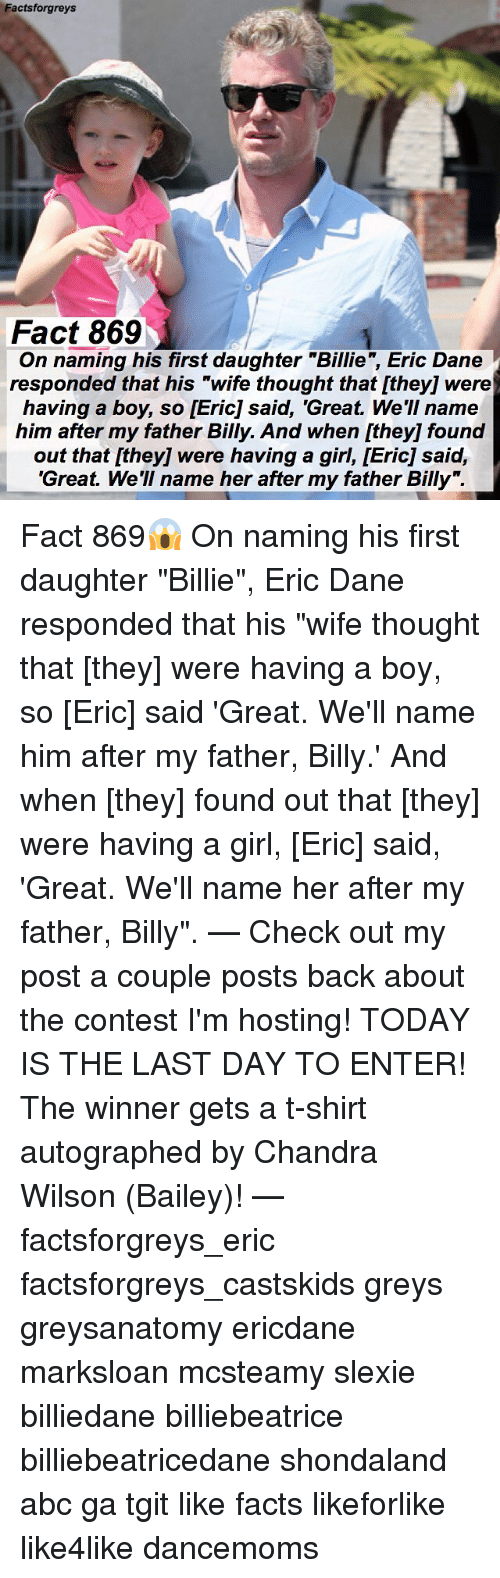 """Abc, Facts, and Memes: Factsforgreys  Fact 869  g his first daughter """"Billie, Eric Dane  On naming his first daughter """"Billie"""", Eric Dane  responded that his """"wife thought that [they] were  having a boy, so [Eric] said, 'Great. We'II name  him after my father Billy. And when [they] found  out that [they] were having a girl, [Eric] said,  'Great. We'll name her after my father Billy"""". Fact 869😱 On naming his first daughter """"Billie"""", Eric Dane responded that his """"wife thought that [they] were having a boy, so [Eric] said 'Great. We'll name him after my father, Billy.' And when [they] found out that [they] were having a girl, [Eric] said, 'Great. We'll name her after my father, Billy"""". — Check out my post a couple posts back about the contest I'm hosting! TODAY IS THE LAST DAY TO ENTER! The winner gets a t-shirt autographed by Chandra Wilson (Bailey)! — factsforgreys_eric factsforgreys_castskids greys greysanatomy ericdane marksloan mcsteamy slexie billiedane billiebeatrice billiebeatricedane shondaland abc ga tgit like facts likeforlike like4like dancemoms"""